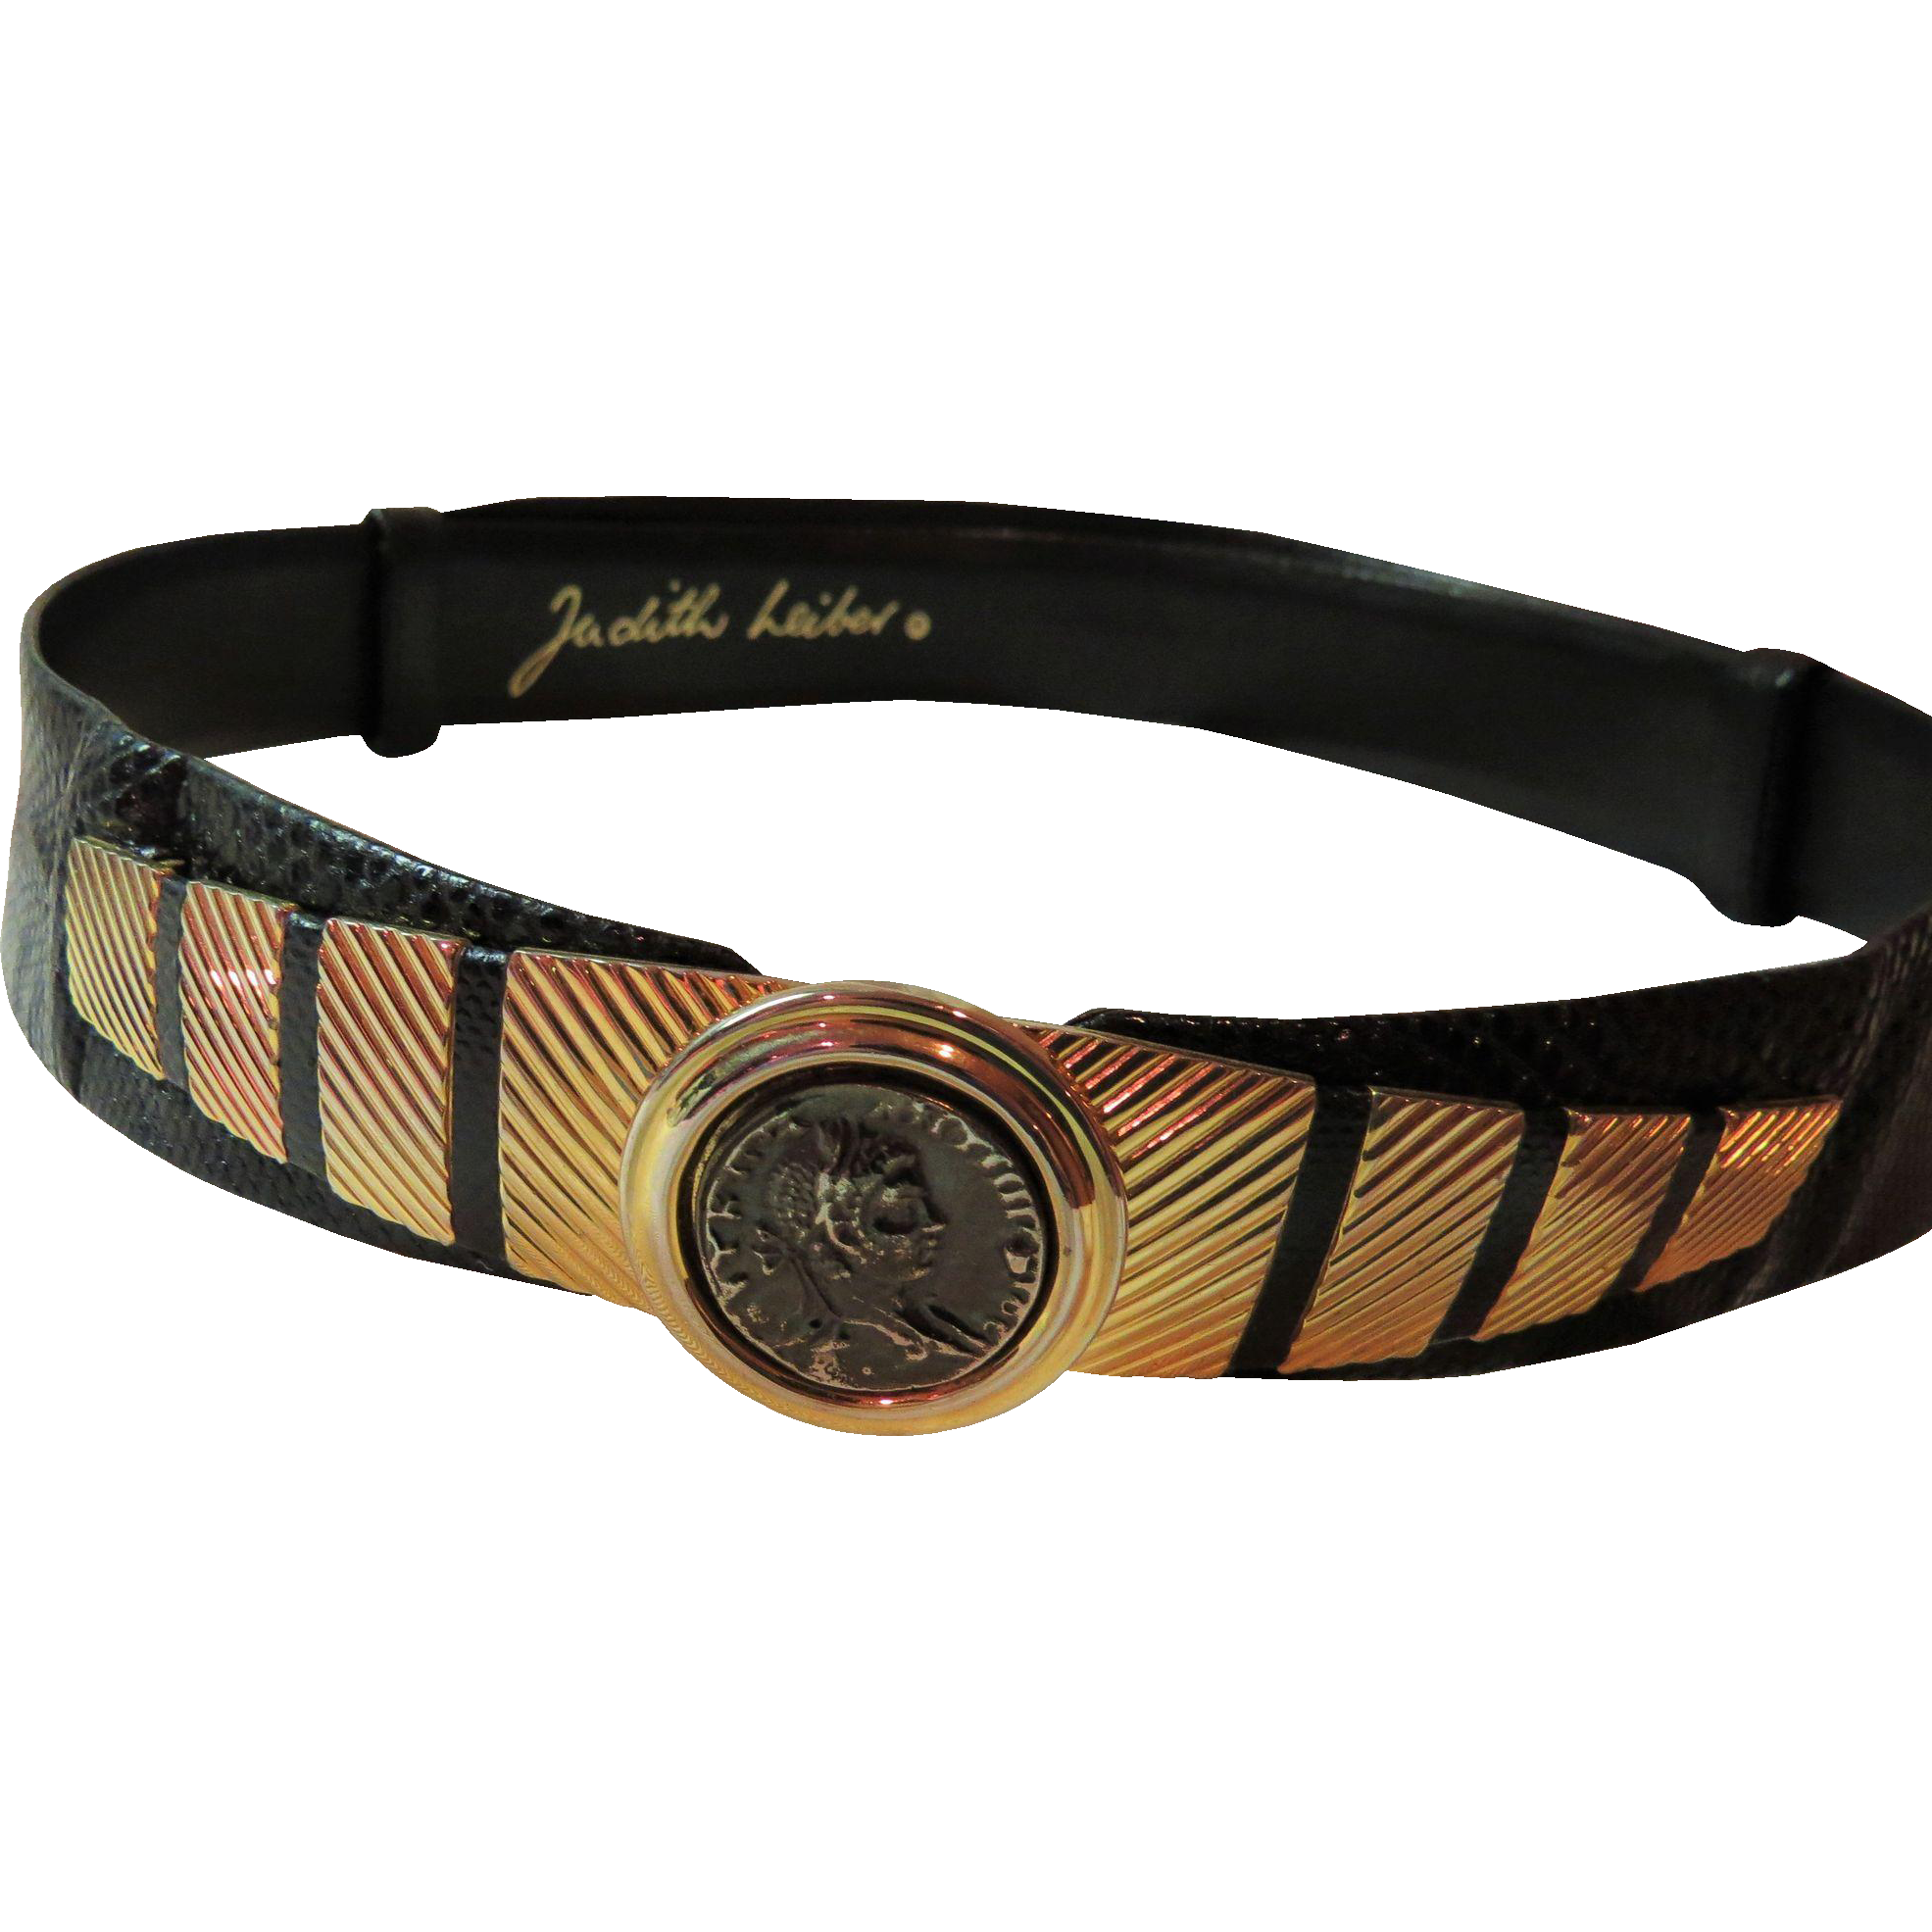 Judith Leiber Black Karung Snakeskin Belt - Vintage Late 1980's Adjustable Belt with Gold Tone accents & Replica Ancient Coin Clasp